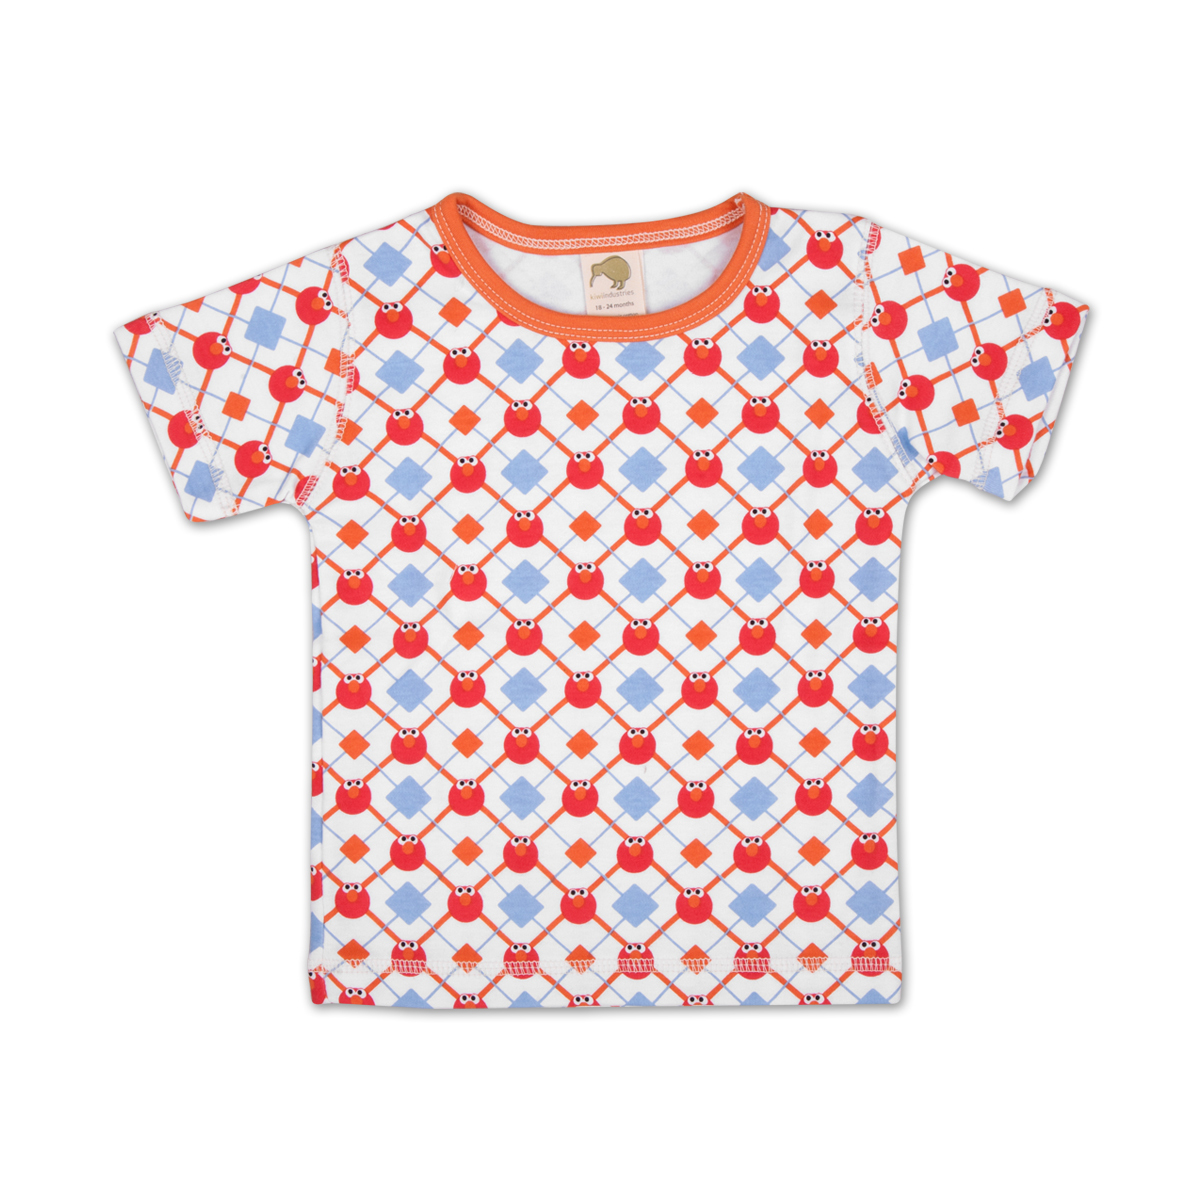 Elmo Argyle Infant T-shirt